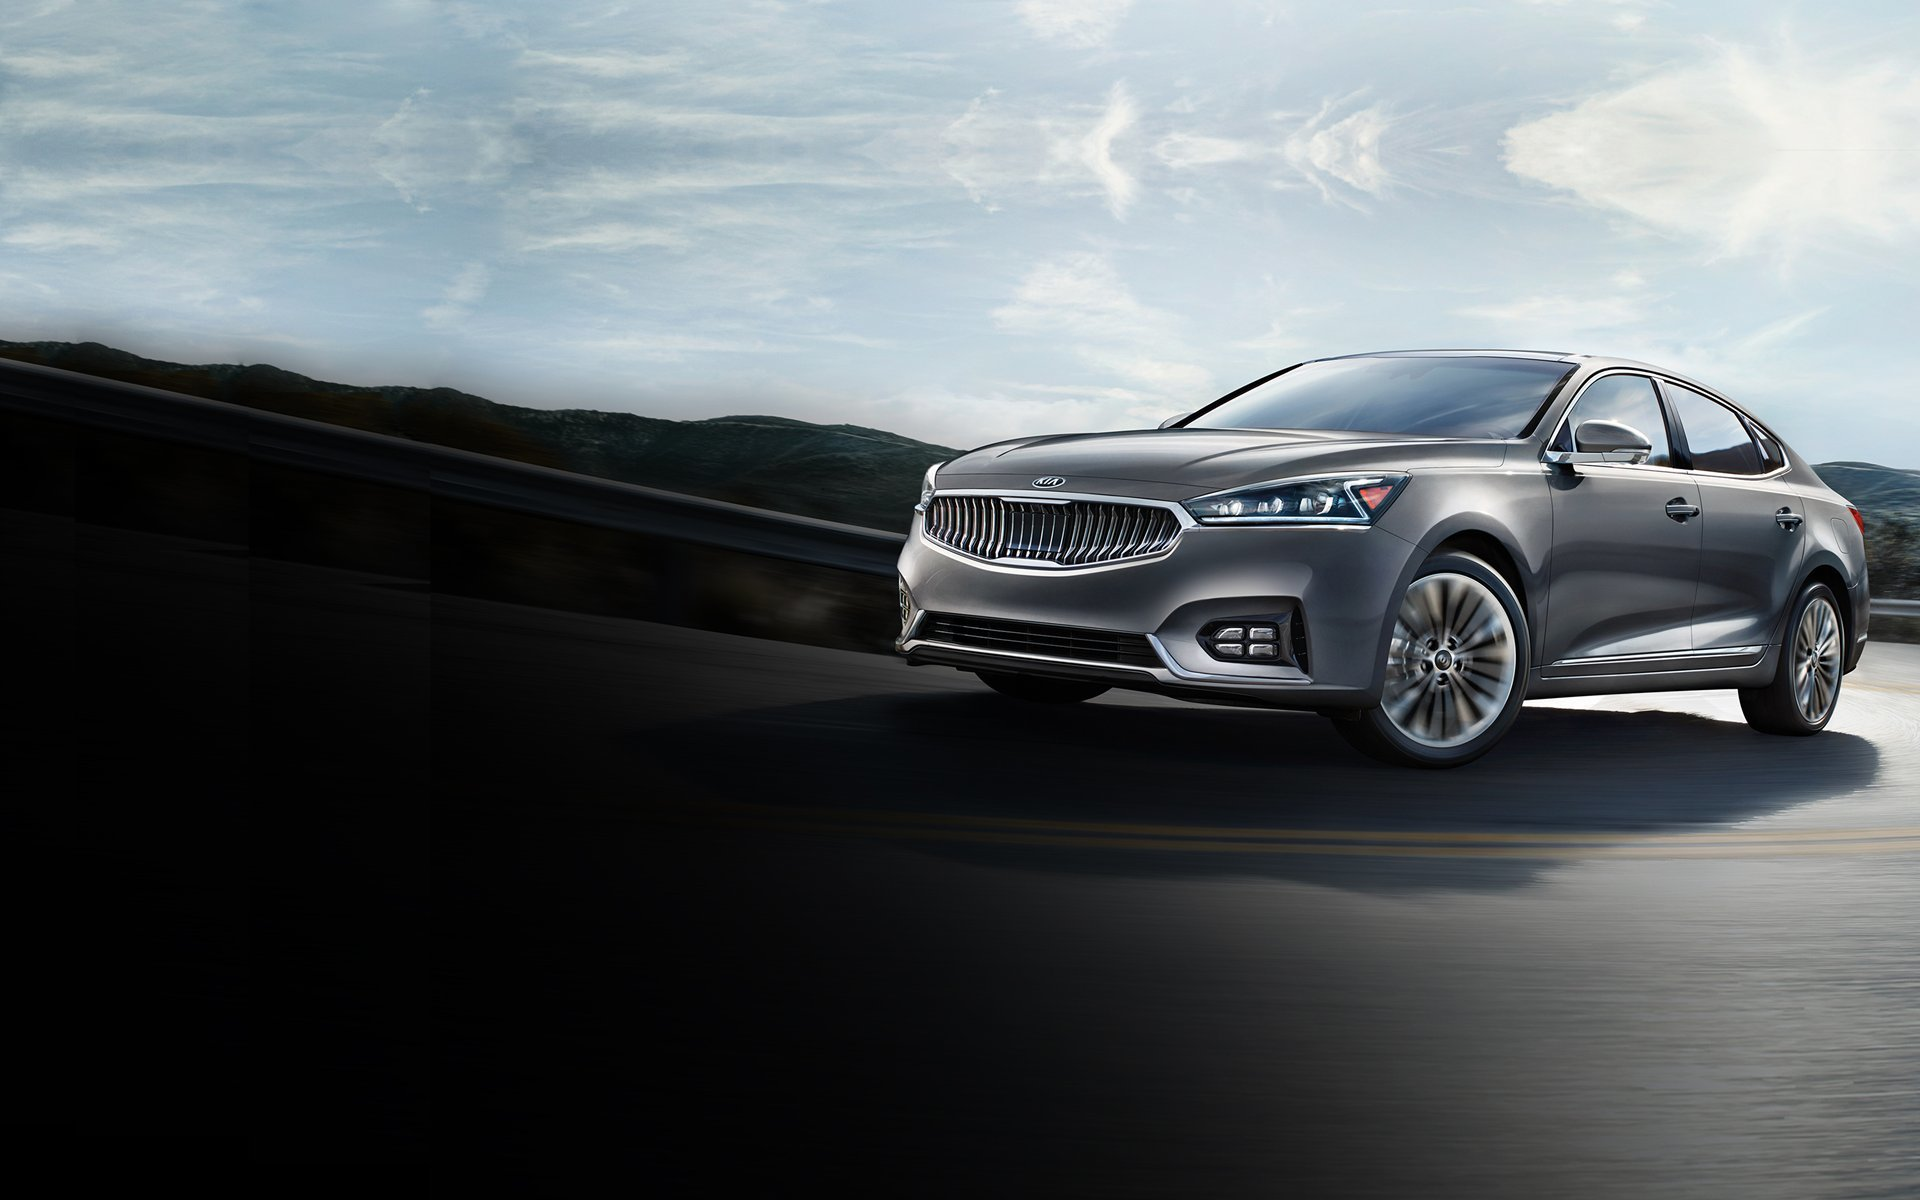 cars the hero sedan drive cadenza cloudfront plays passage new q tym review kia a w net url tuneful